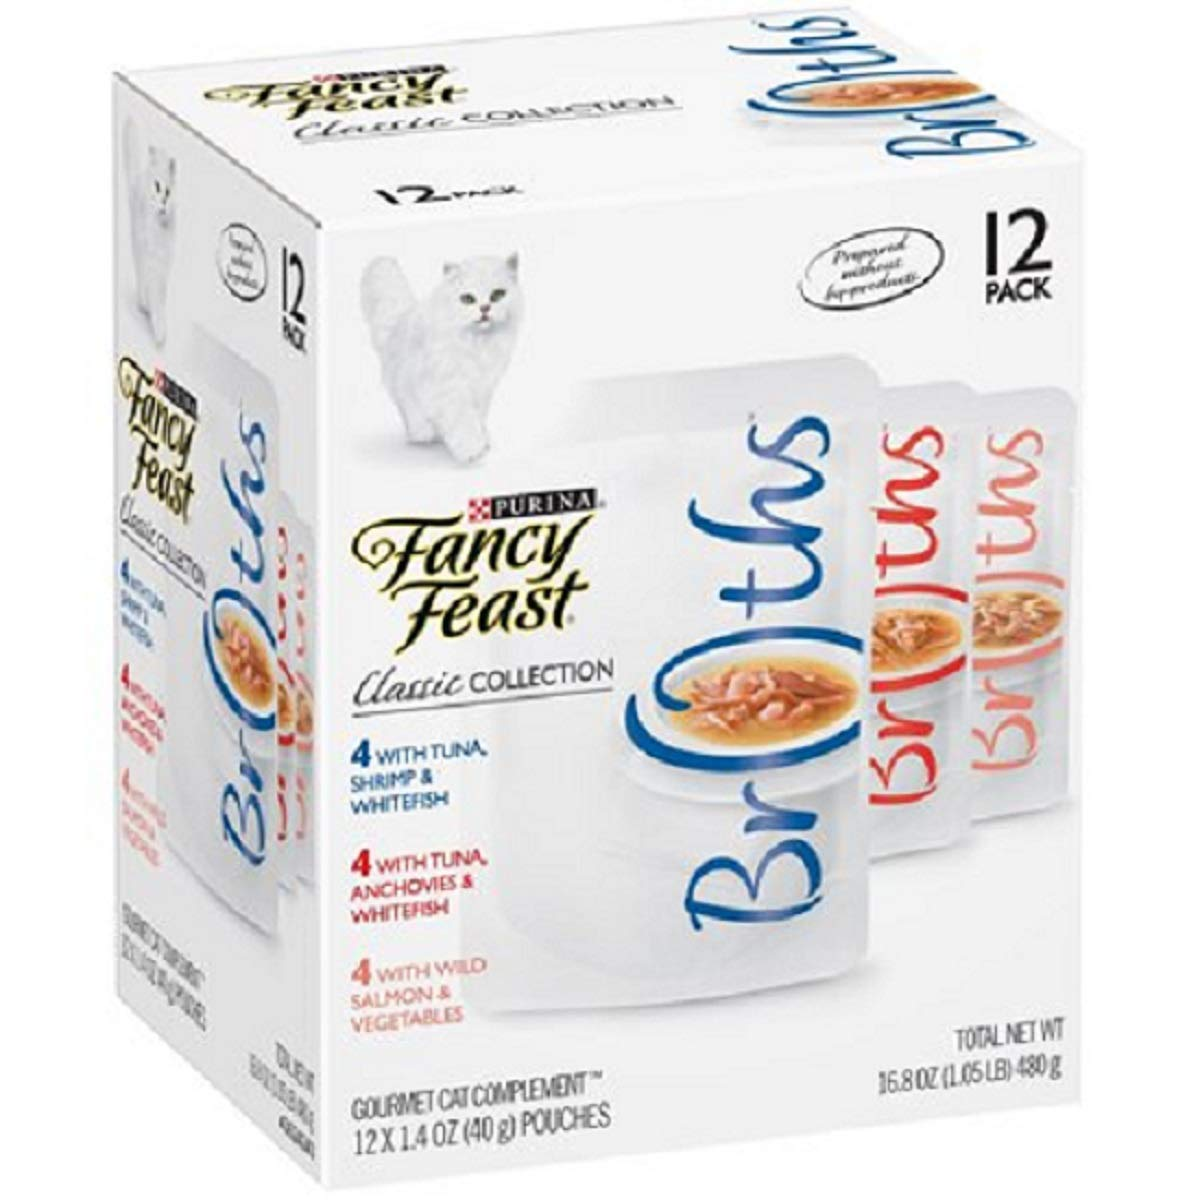 Purina Fancy Feast Broths Adult Wet Cat Food Complement Variety Packs - 12 (1.4 oz. Pouches) (3 Flavor Classic Broth Collection, (12) 1.4 oz. Pouches) by Purina Fancy Feast